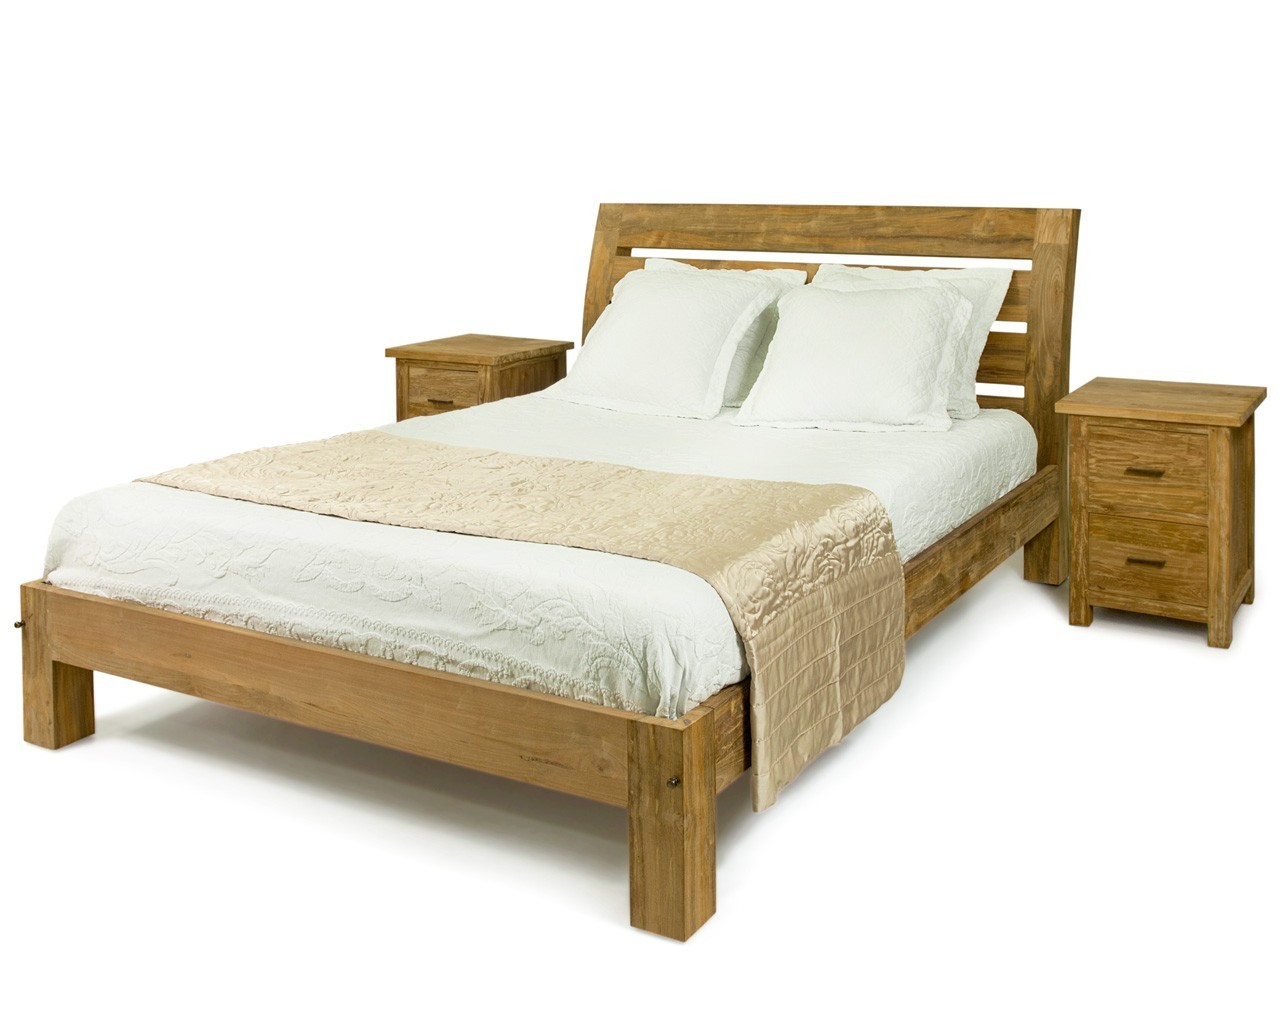 Buy double bed online in india 78504524 - Bed desine double bed ...